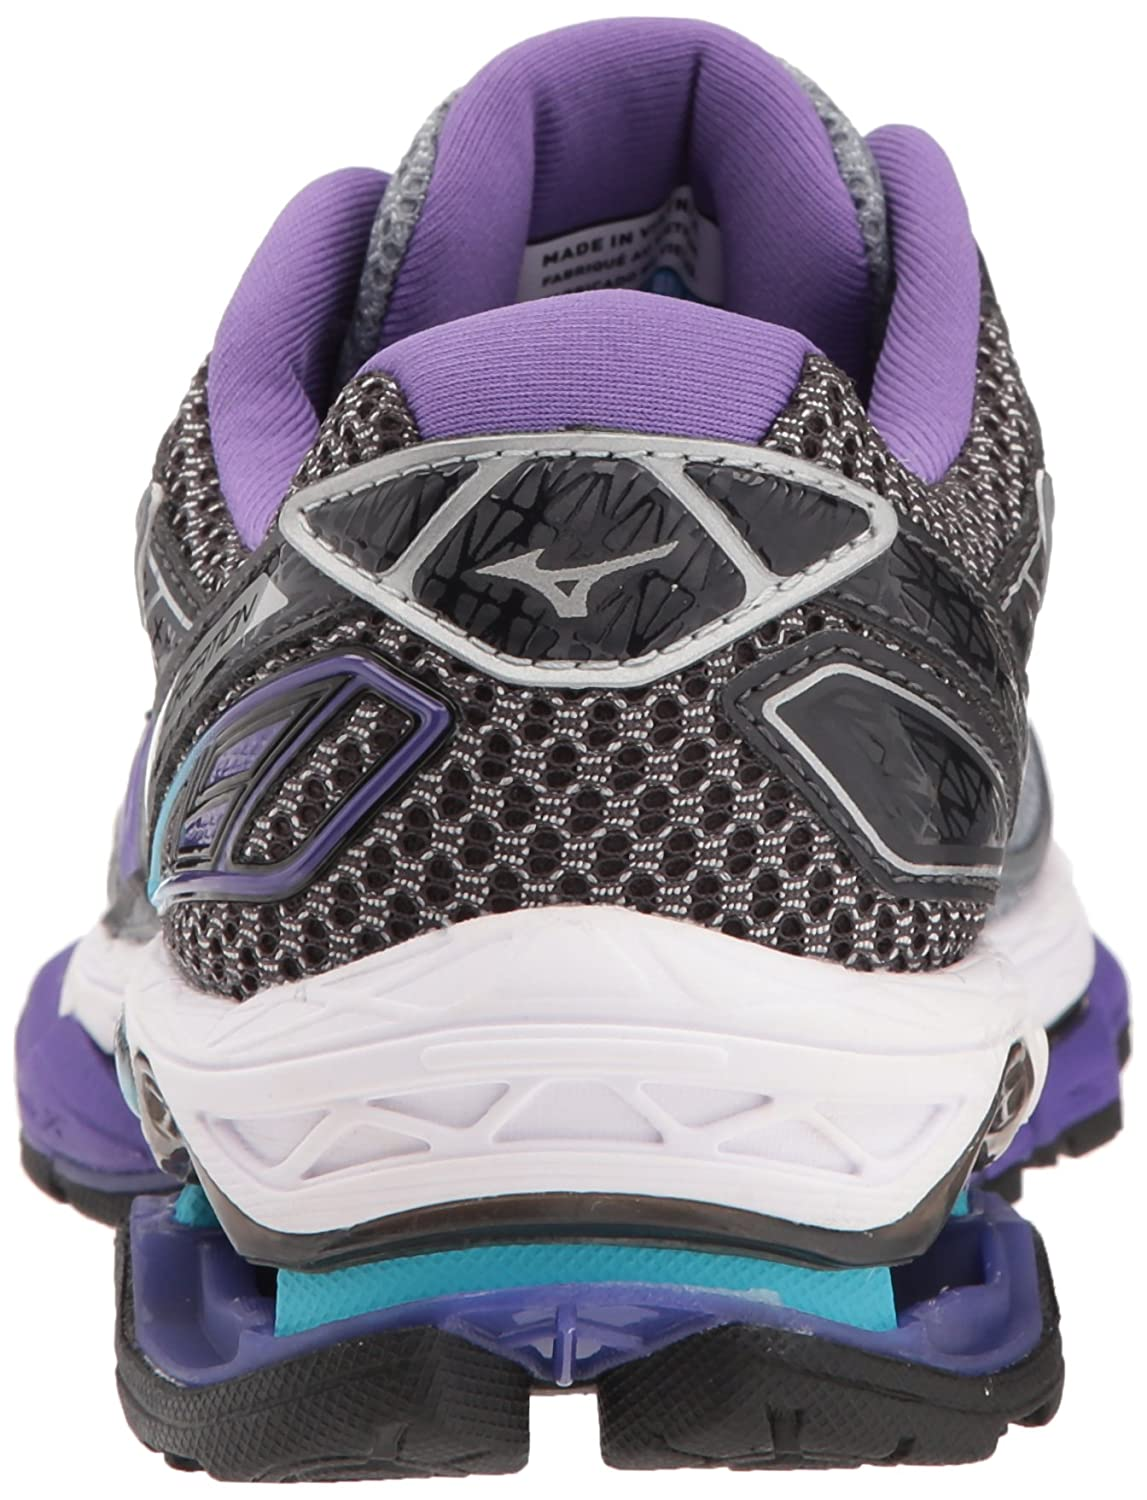 Mizuno Running Shoes Women's Wave Creation 19 Shoes Running B0722NR18W 8 B(M) US|Monument/Passion Flower 8f714f